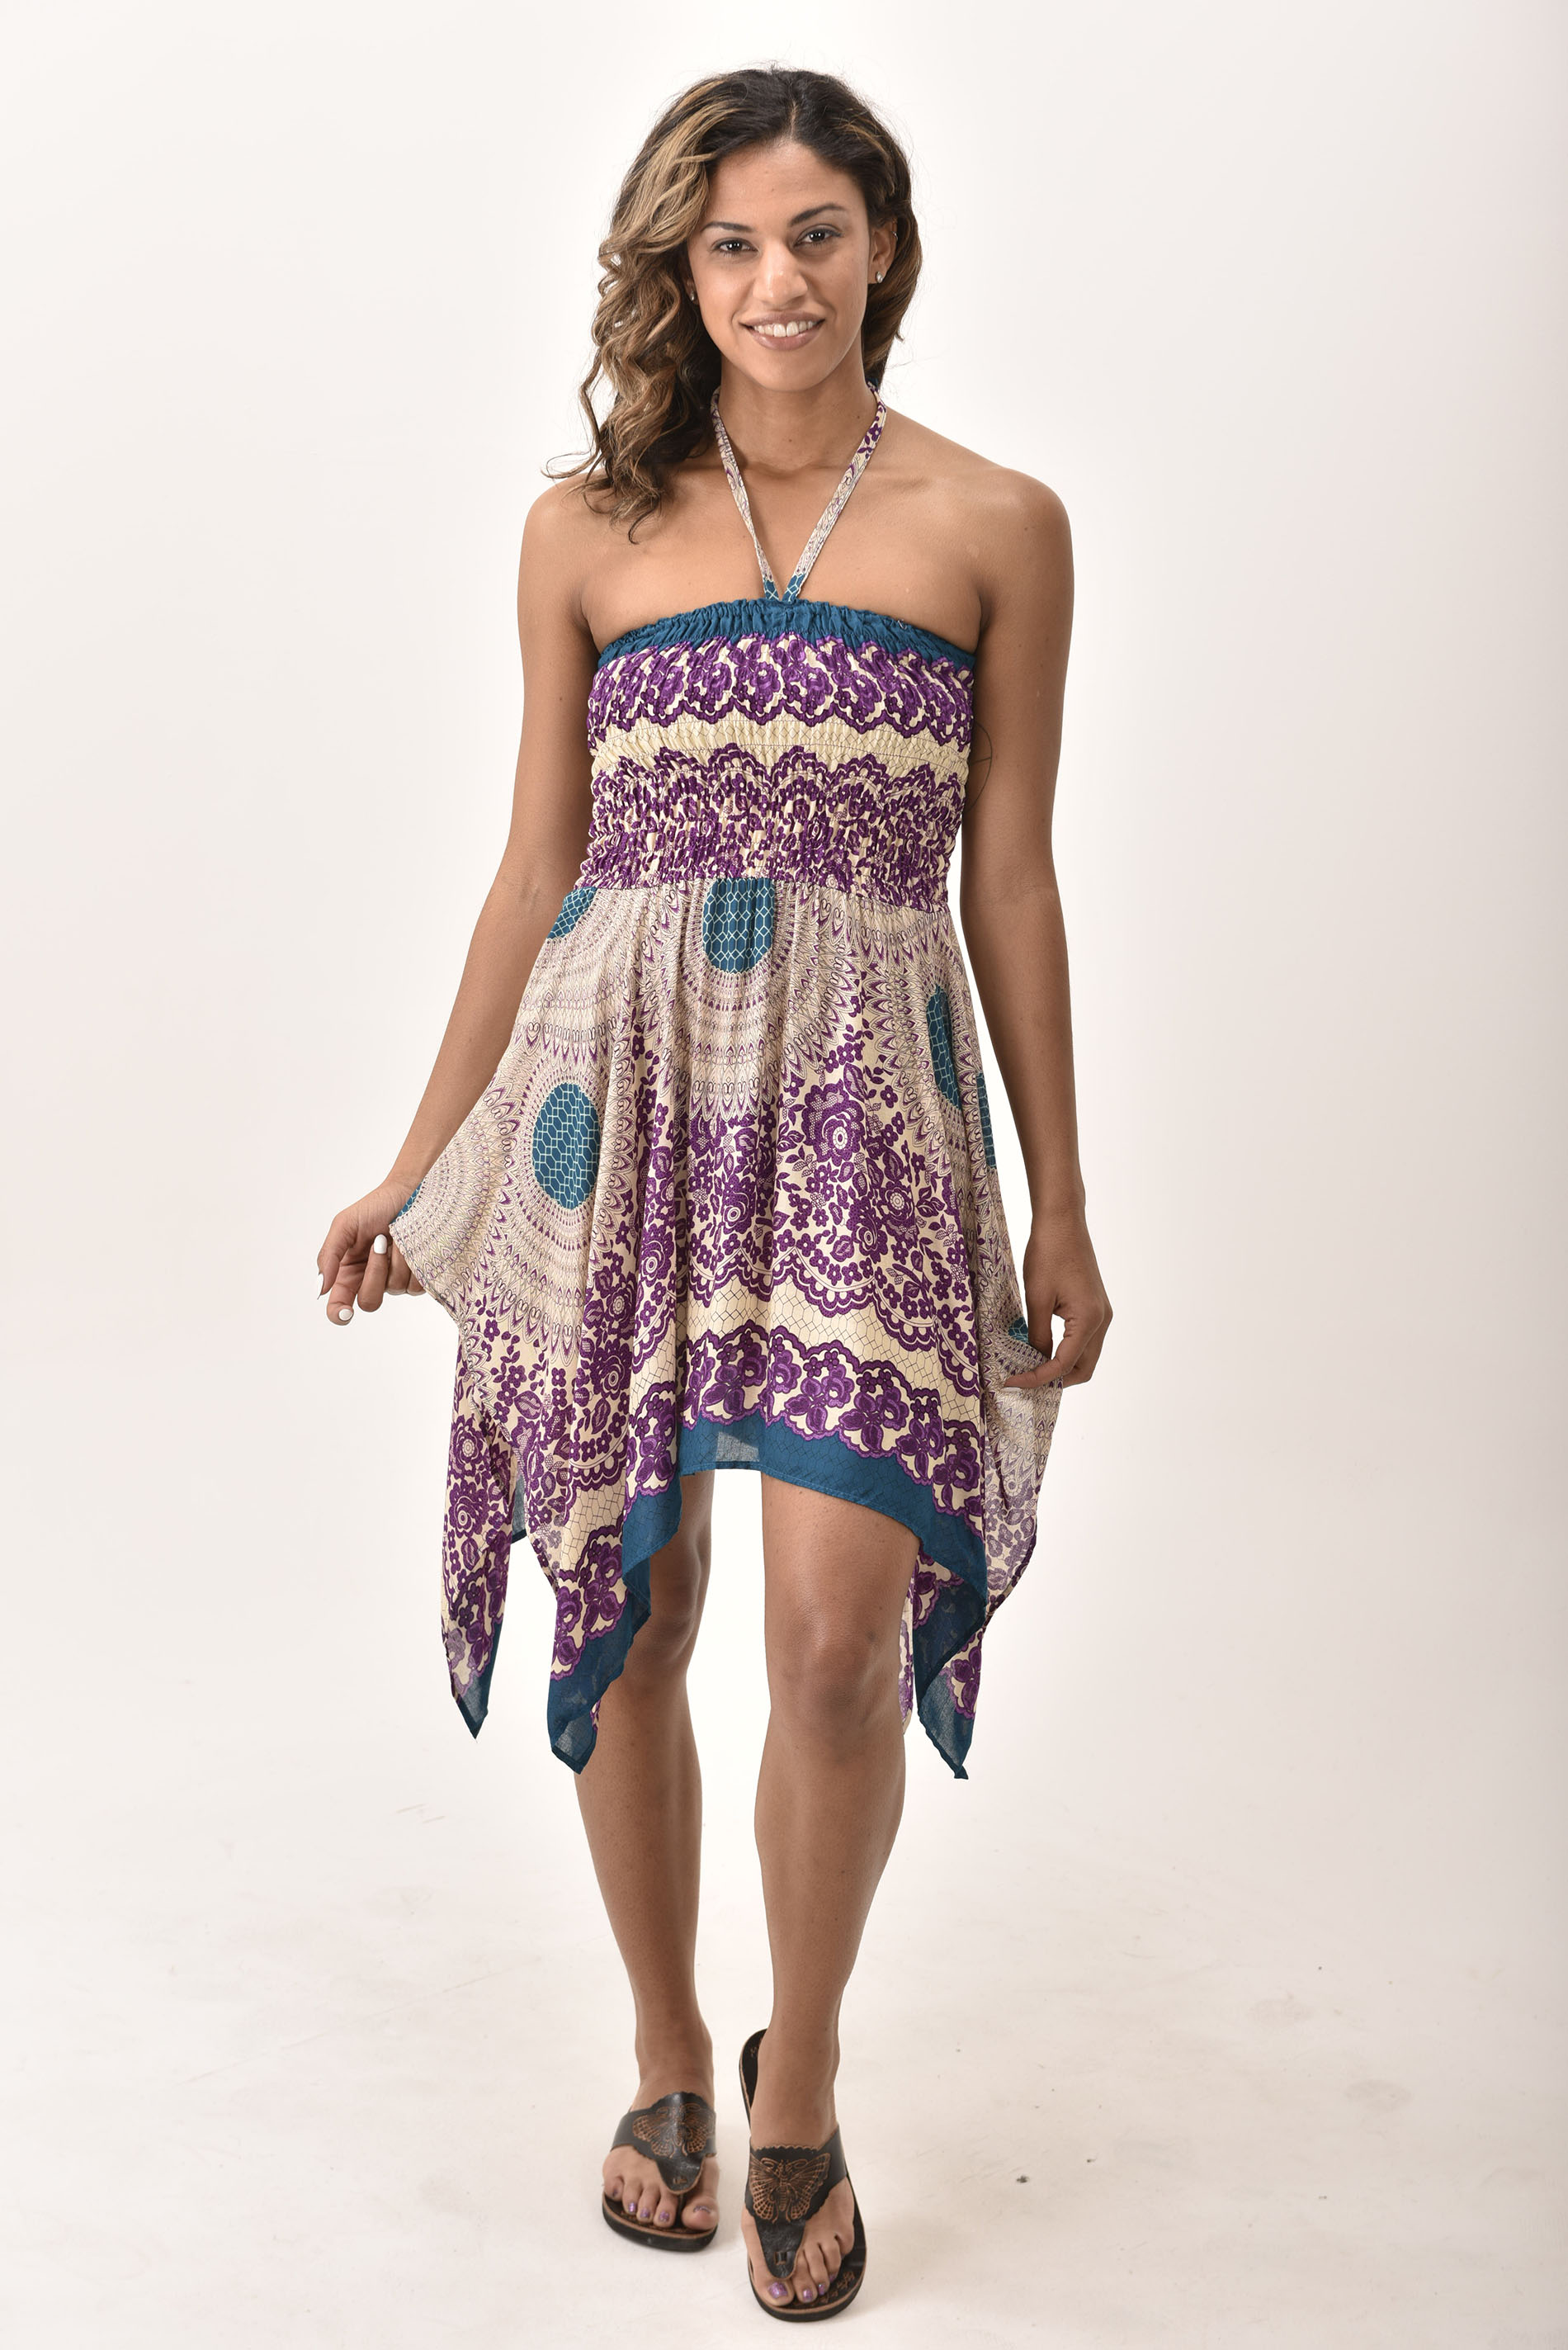 Honeycomb Print Rayon Dress / Skirt Purple